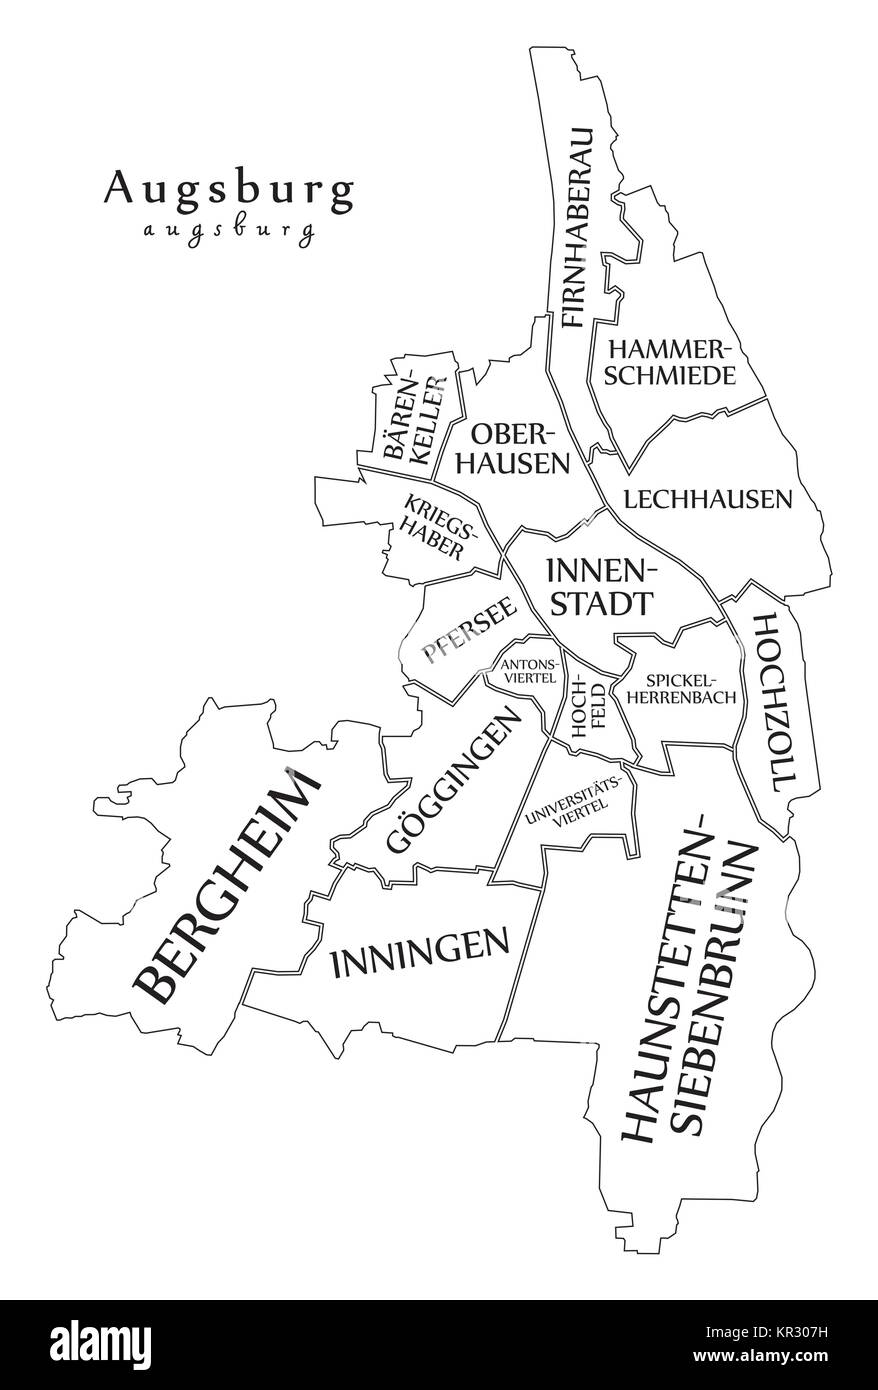 Modern City Map Augsburg city of Germany with boroughs and titles